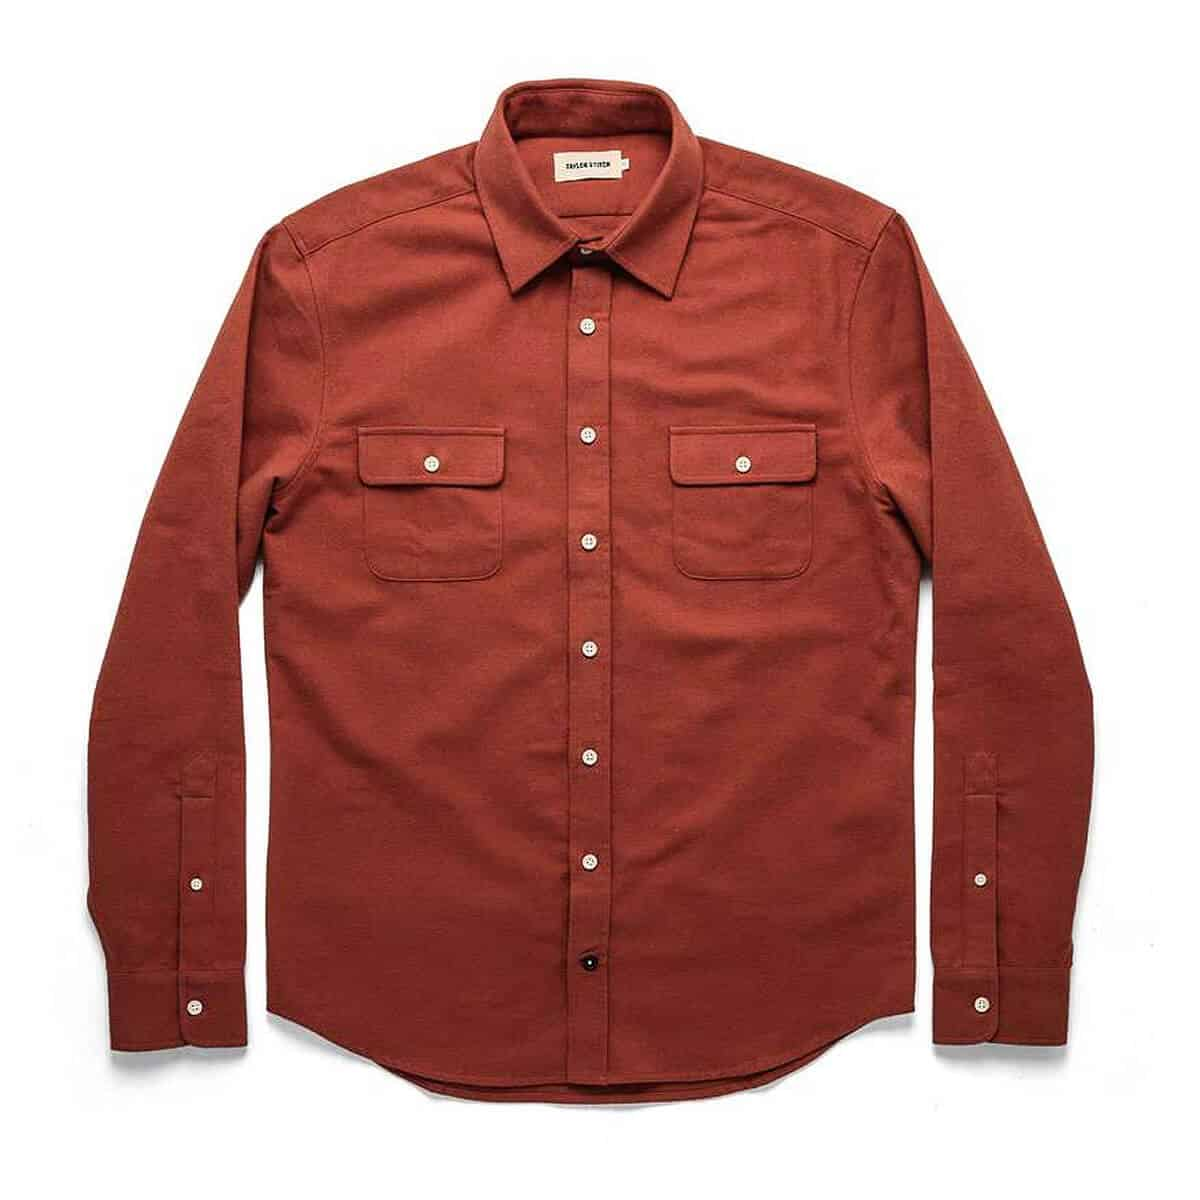 Taylor Stitch: The Yosemite Shirt in Dusty Red